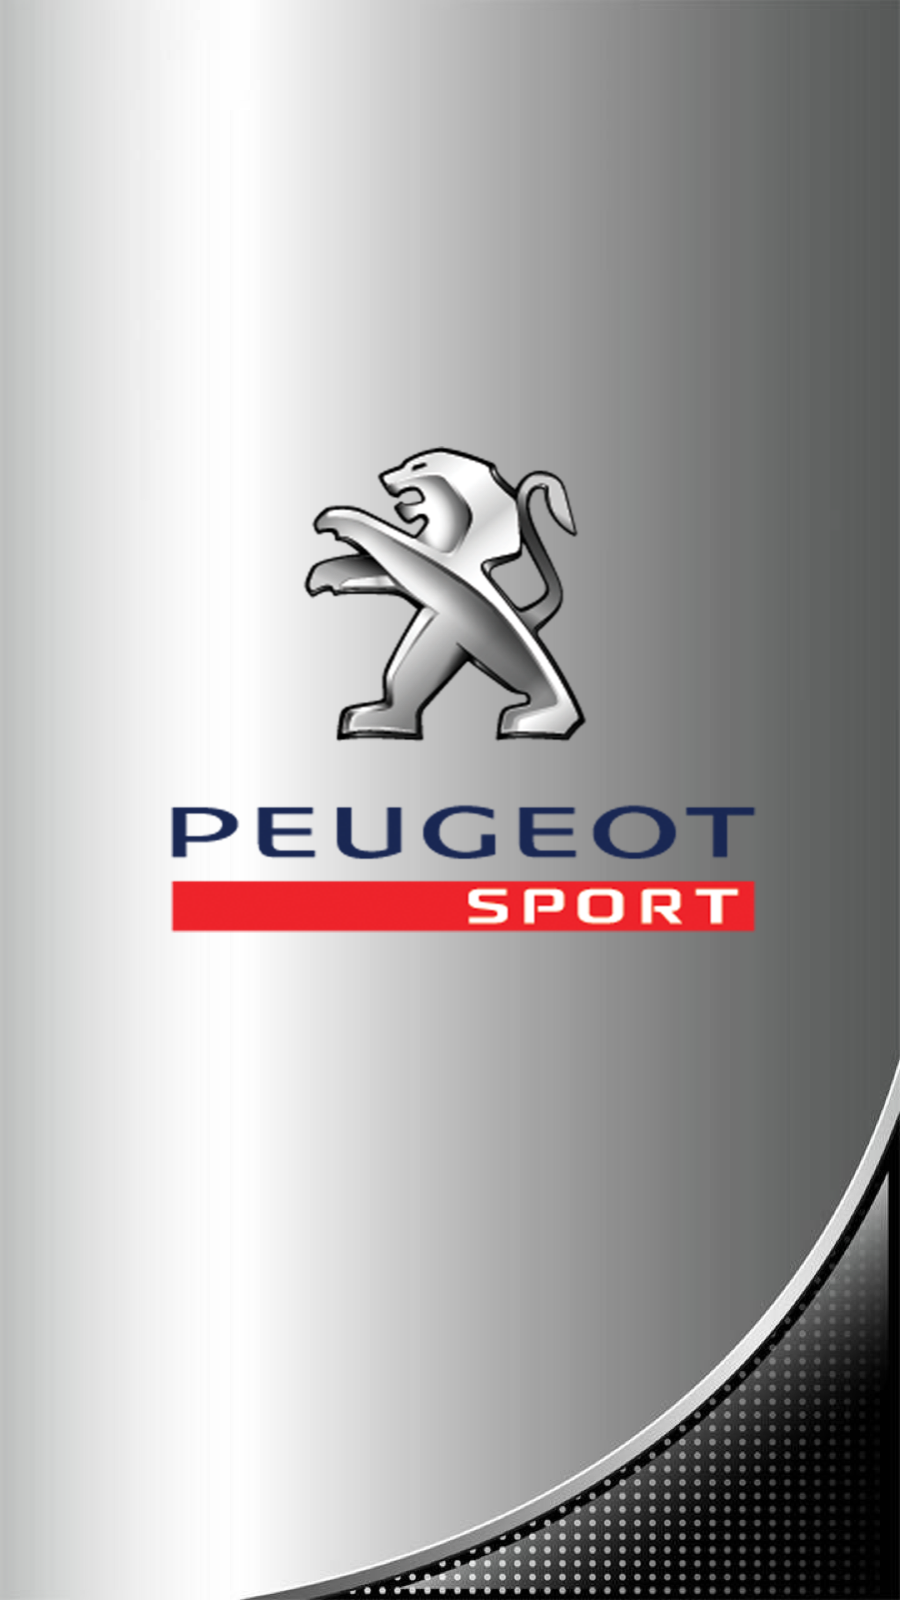 Pin By Jorge Franco On Autos Peugeot Nissan Iphone Wallpaper